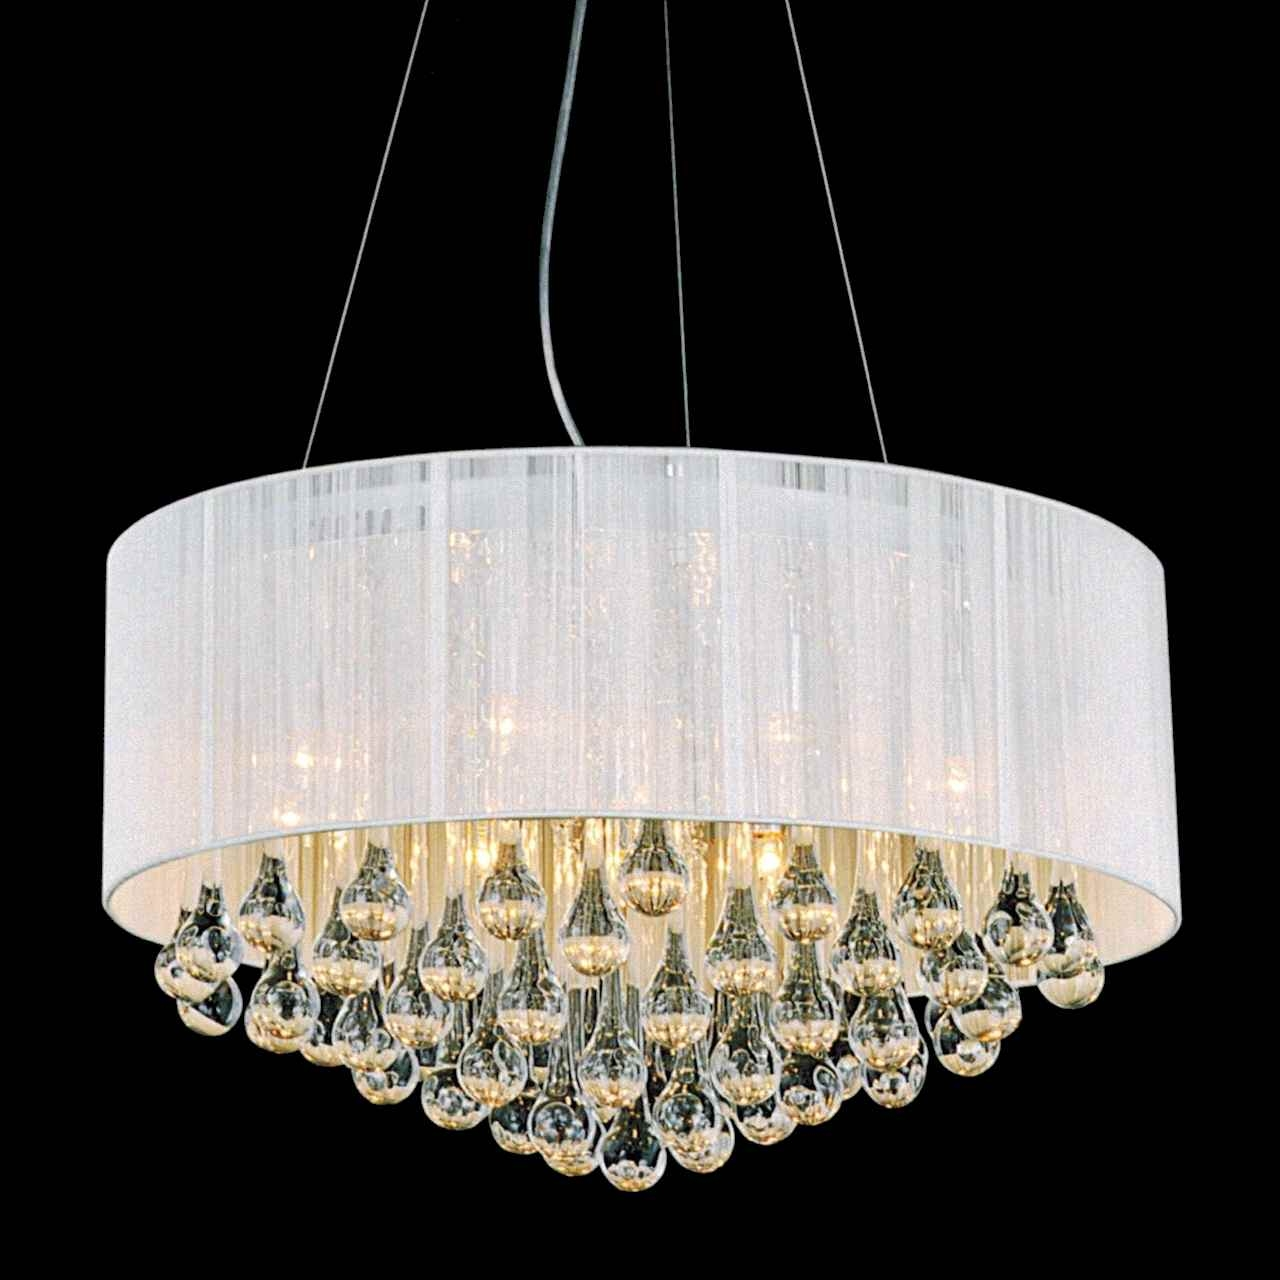 Contemporary Chandelier Design Ideas Inspiration Home Designs With Contemporary Chandeliers (Image 8 of 15)